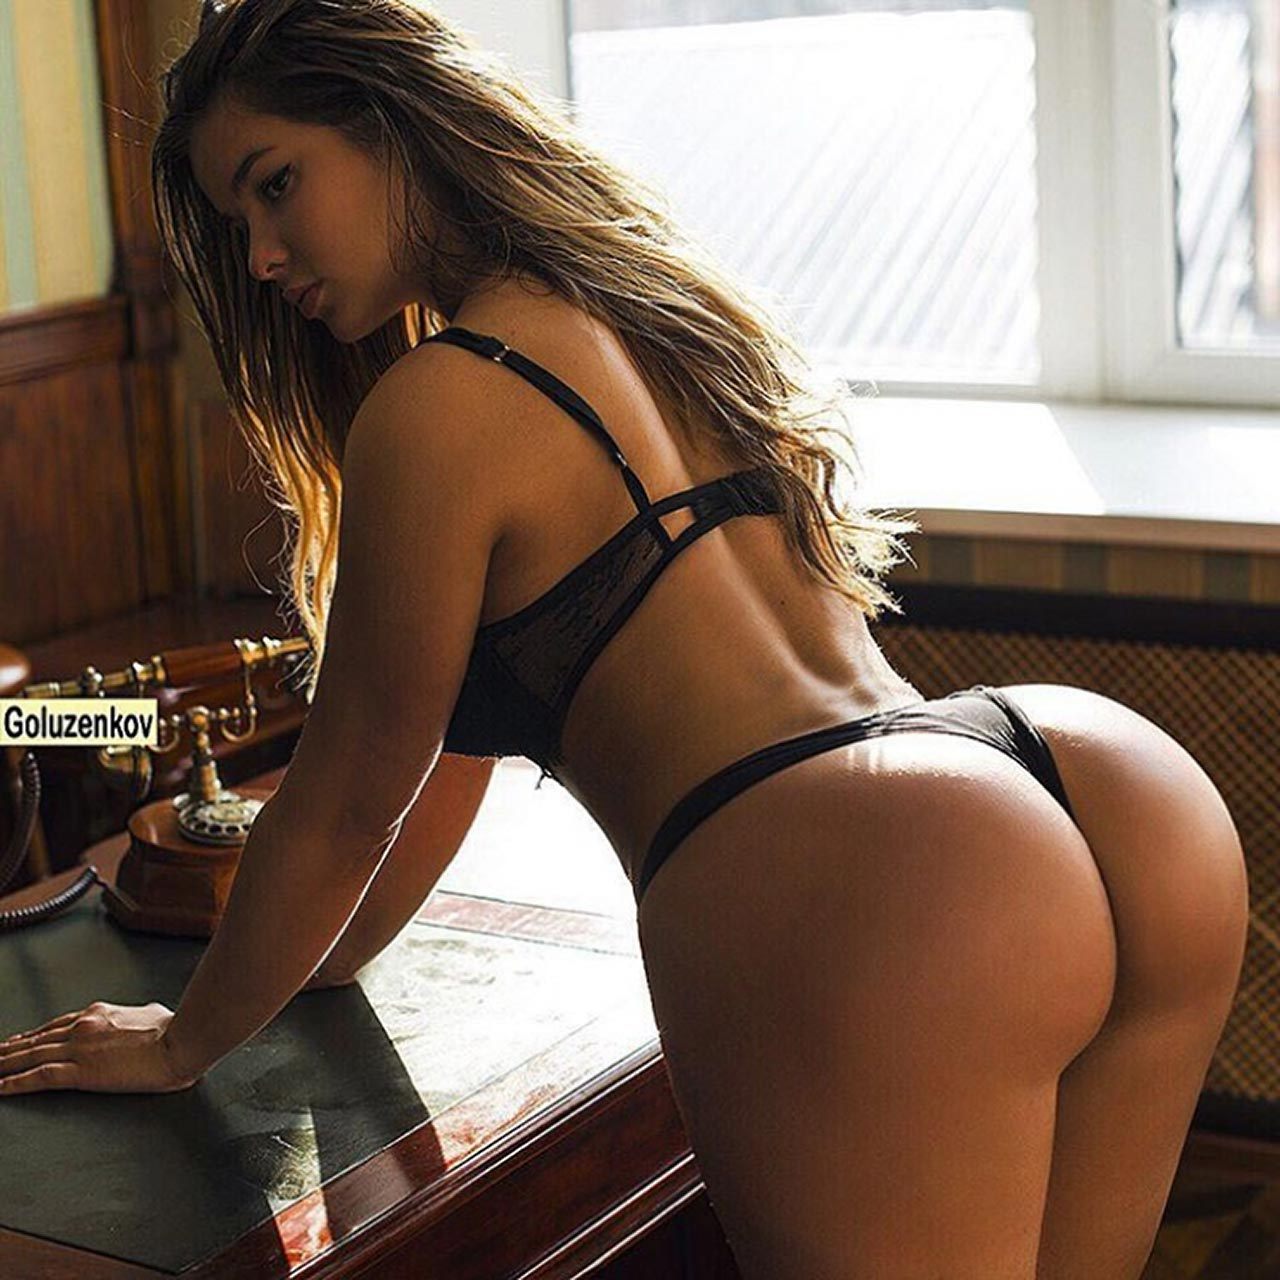 Anastasiya Kvitko Poringa anastasiya kvitko nude and hot photos scandal planet | free